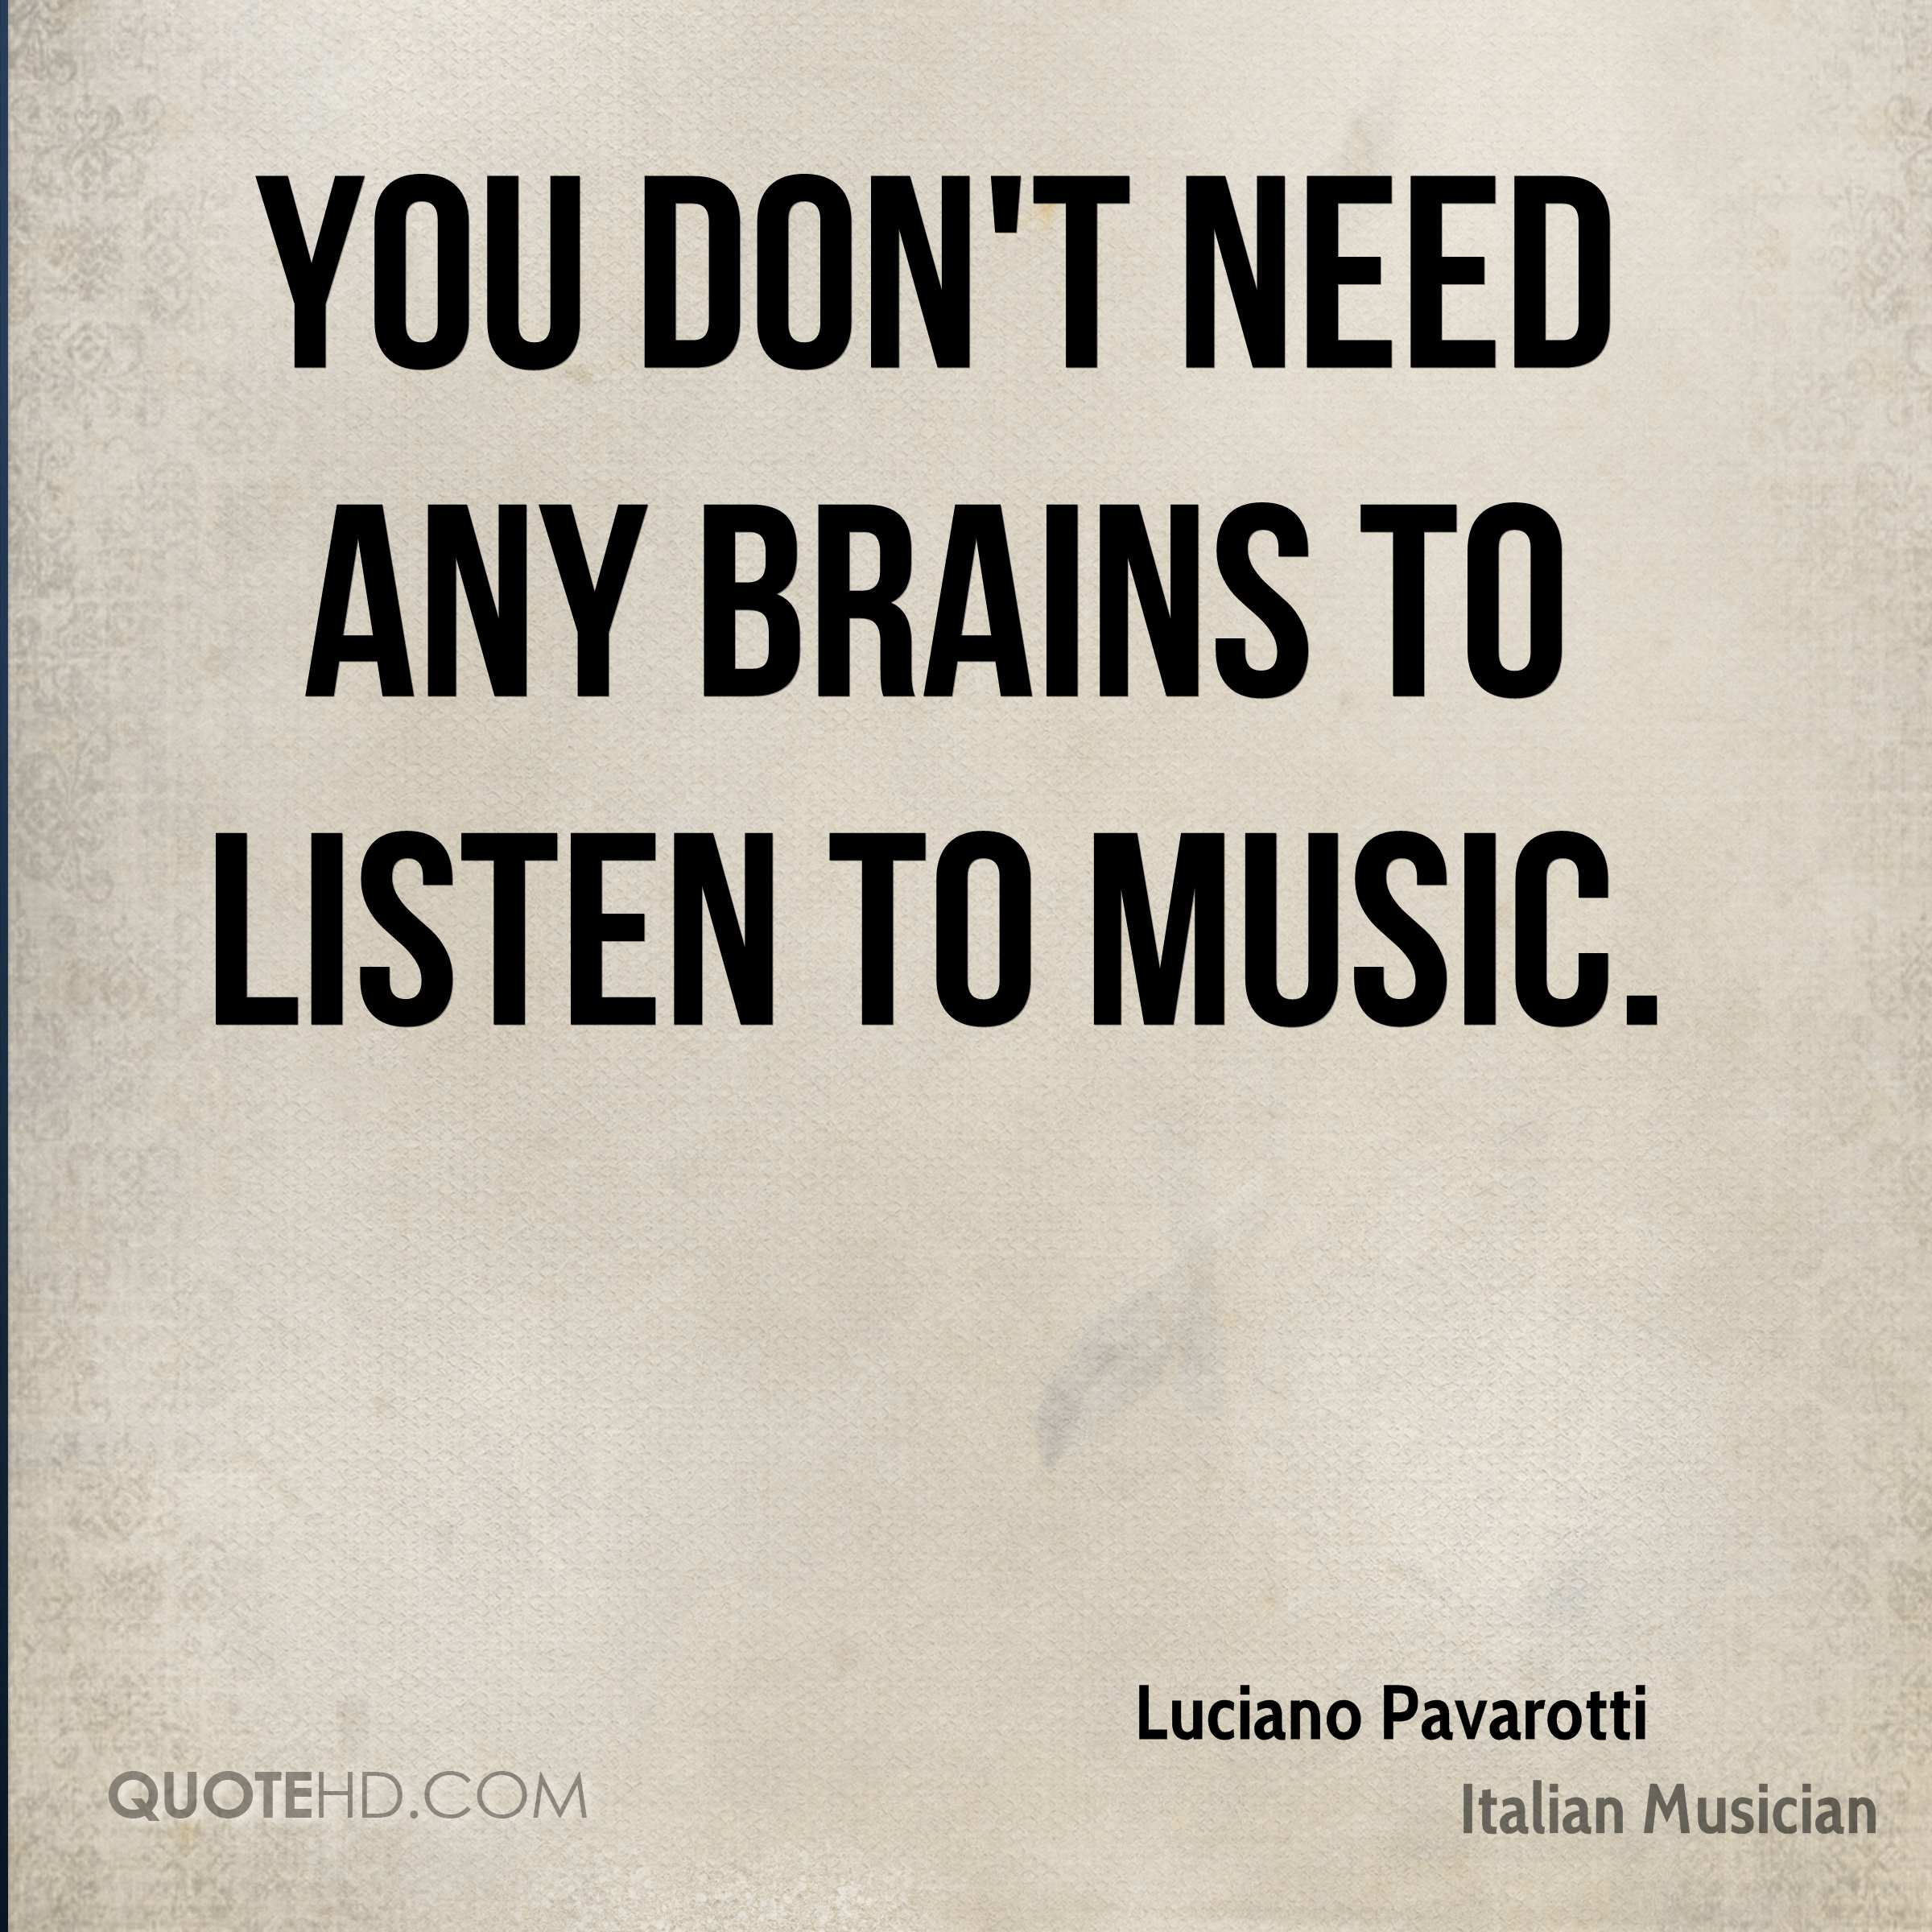 You don't need any brains to listen to music.